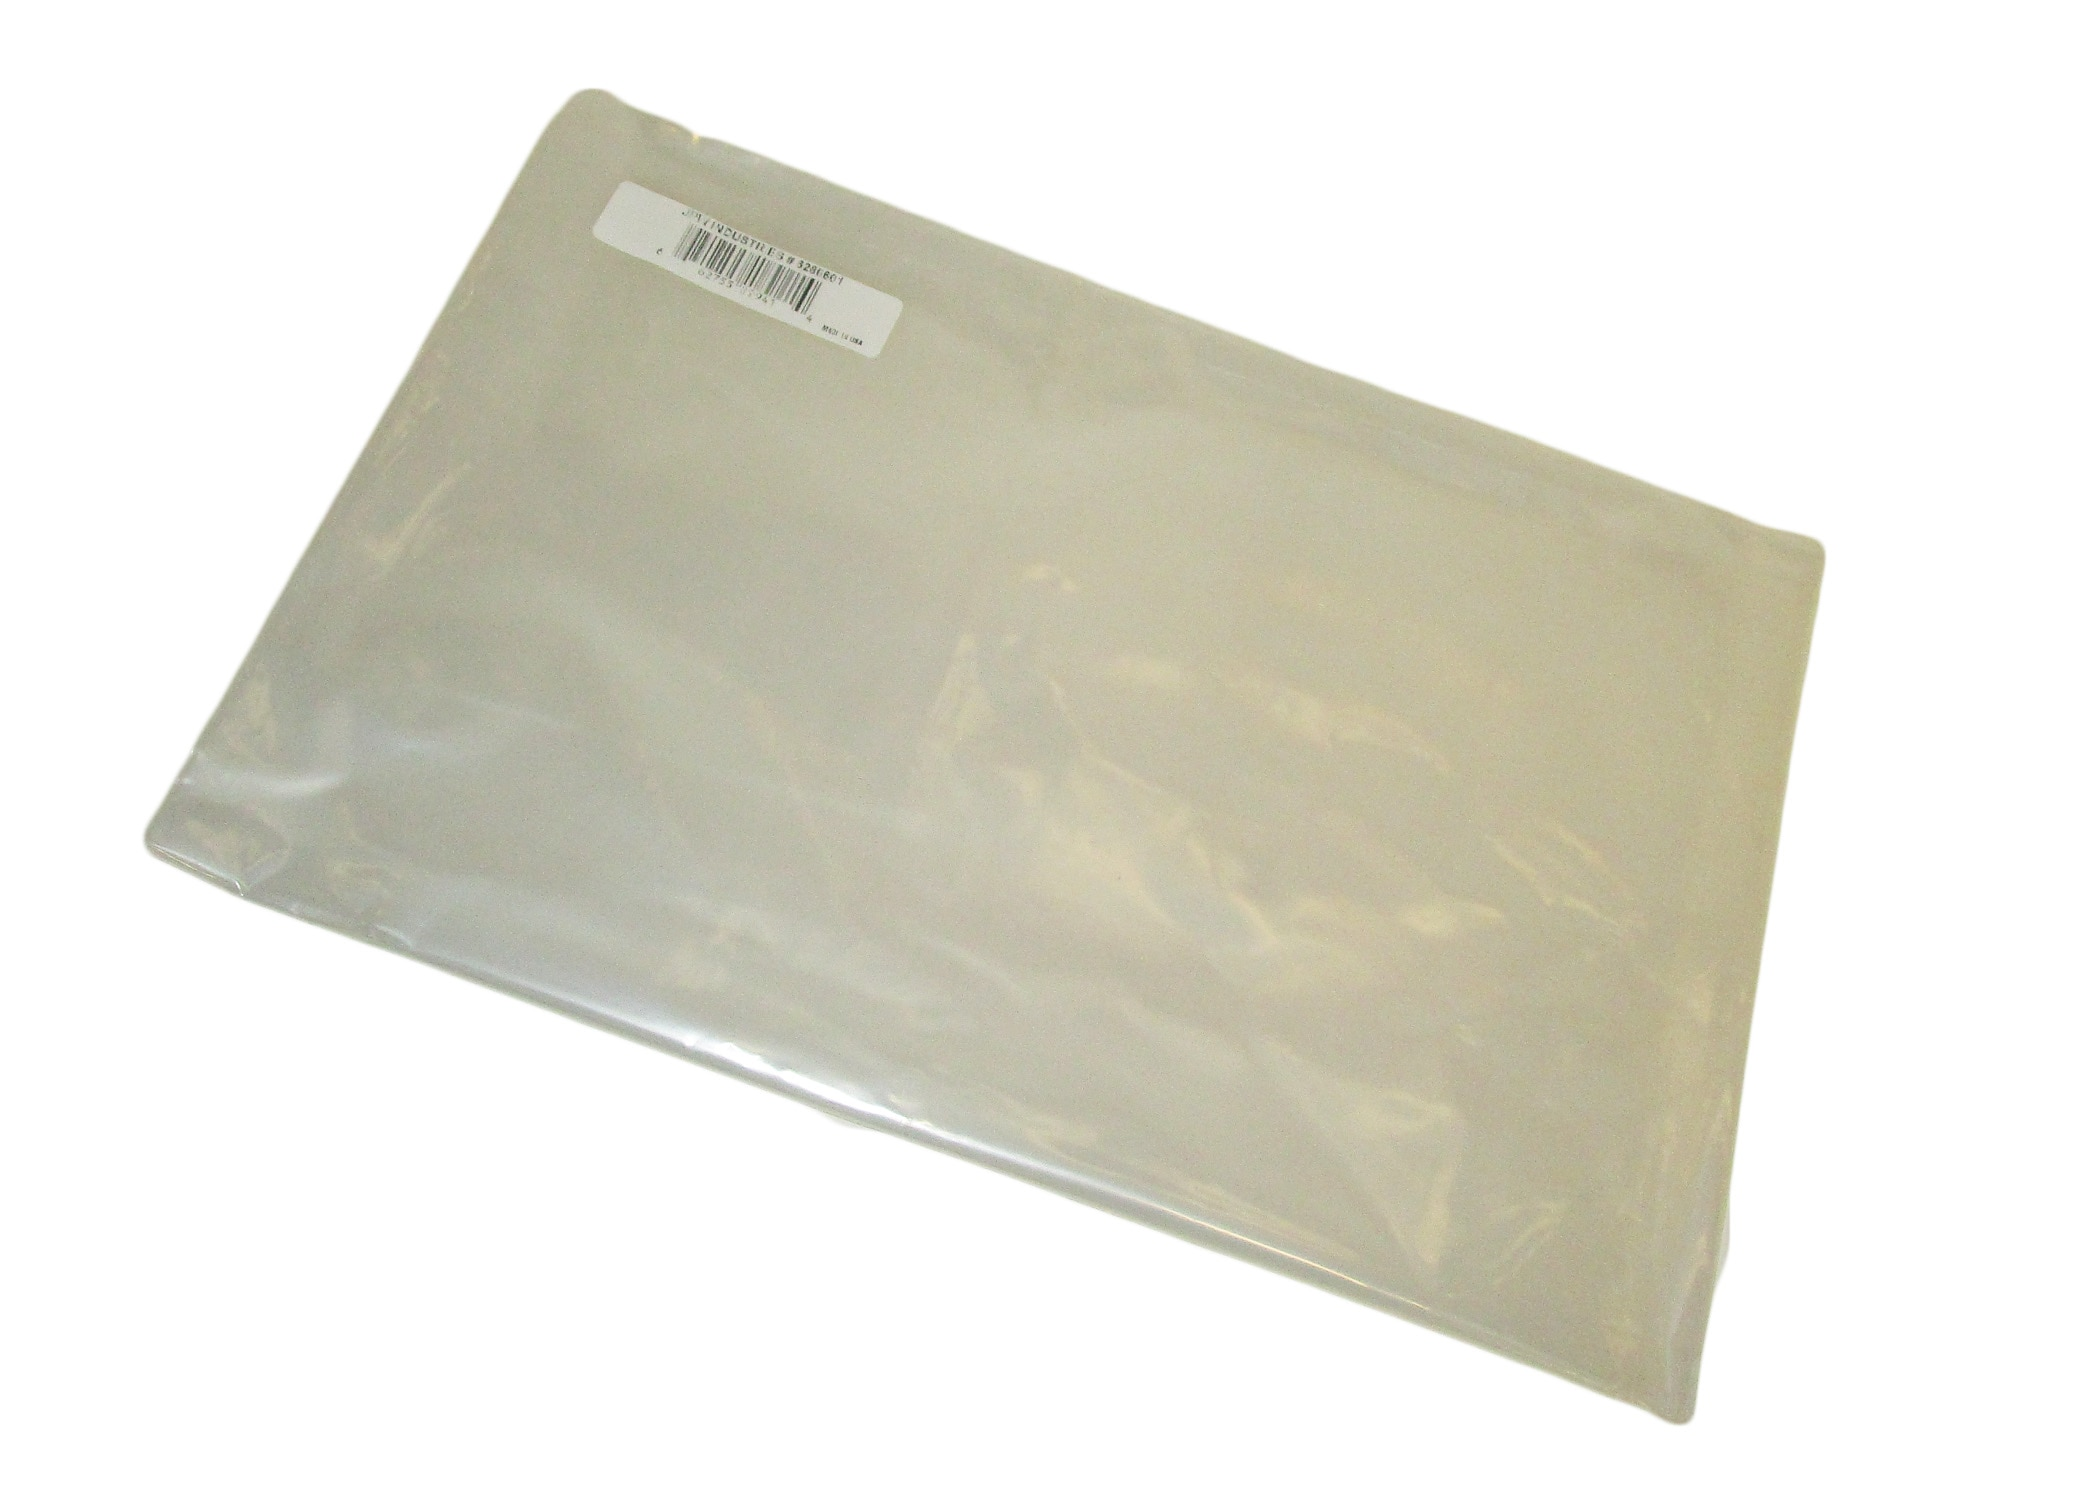 Powermatic — Lower Dust Collection Bag for Model 75 Dust Collector